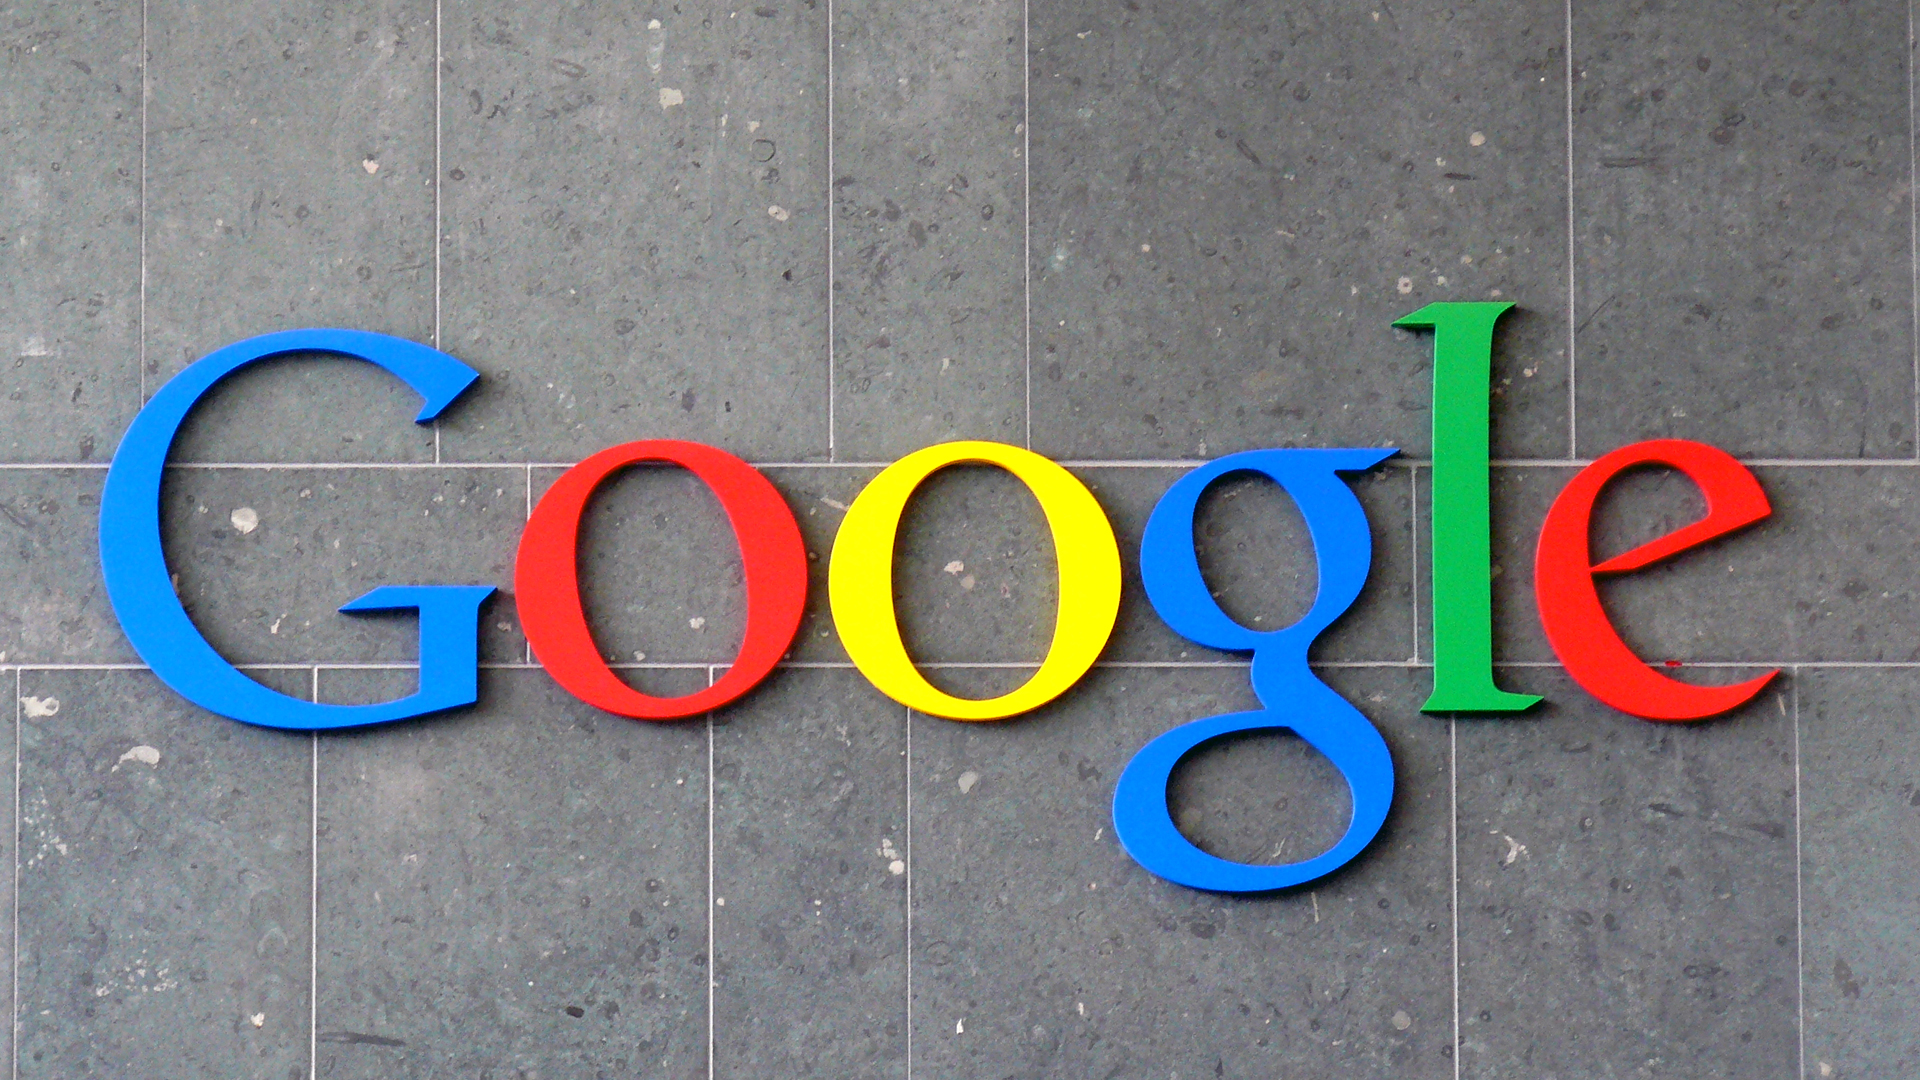 British Apple users gain right to sue Google over illegal data snooping